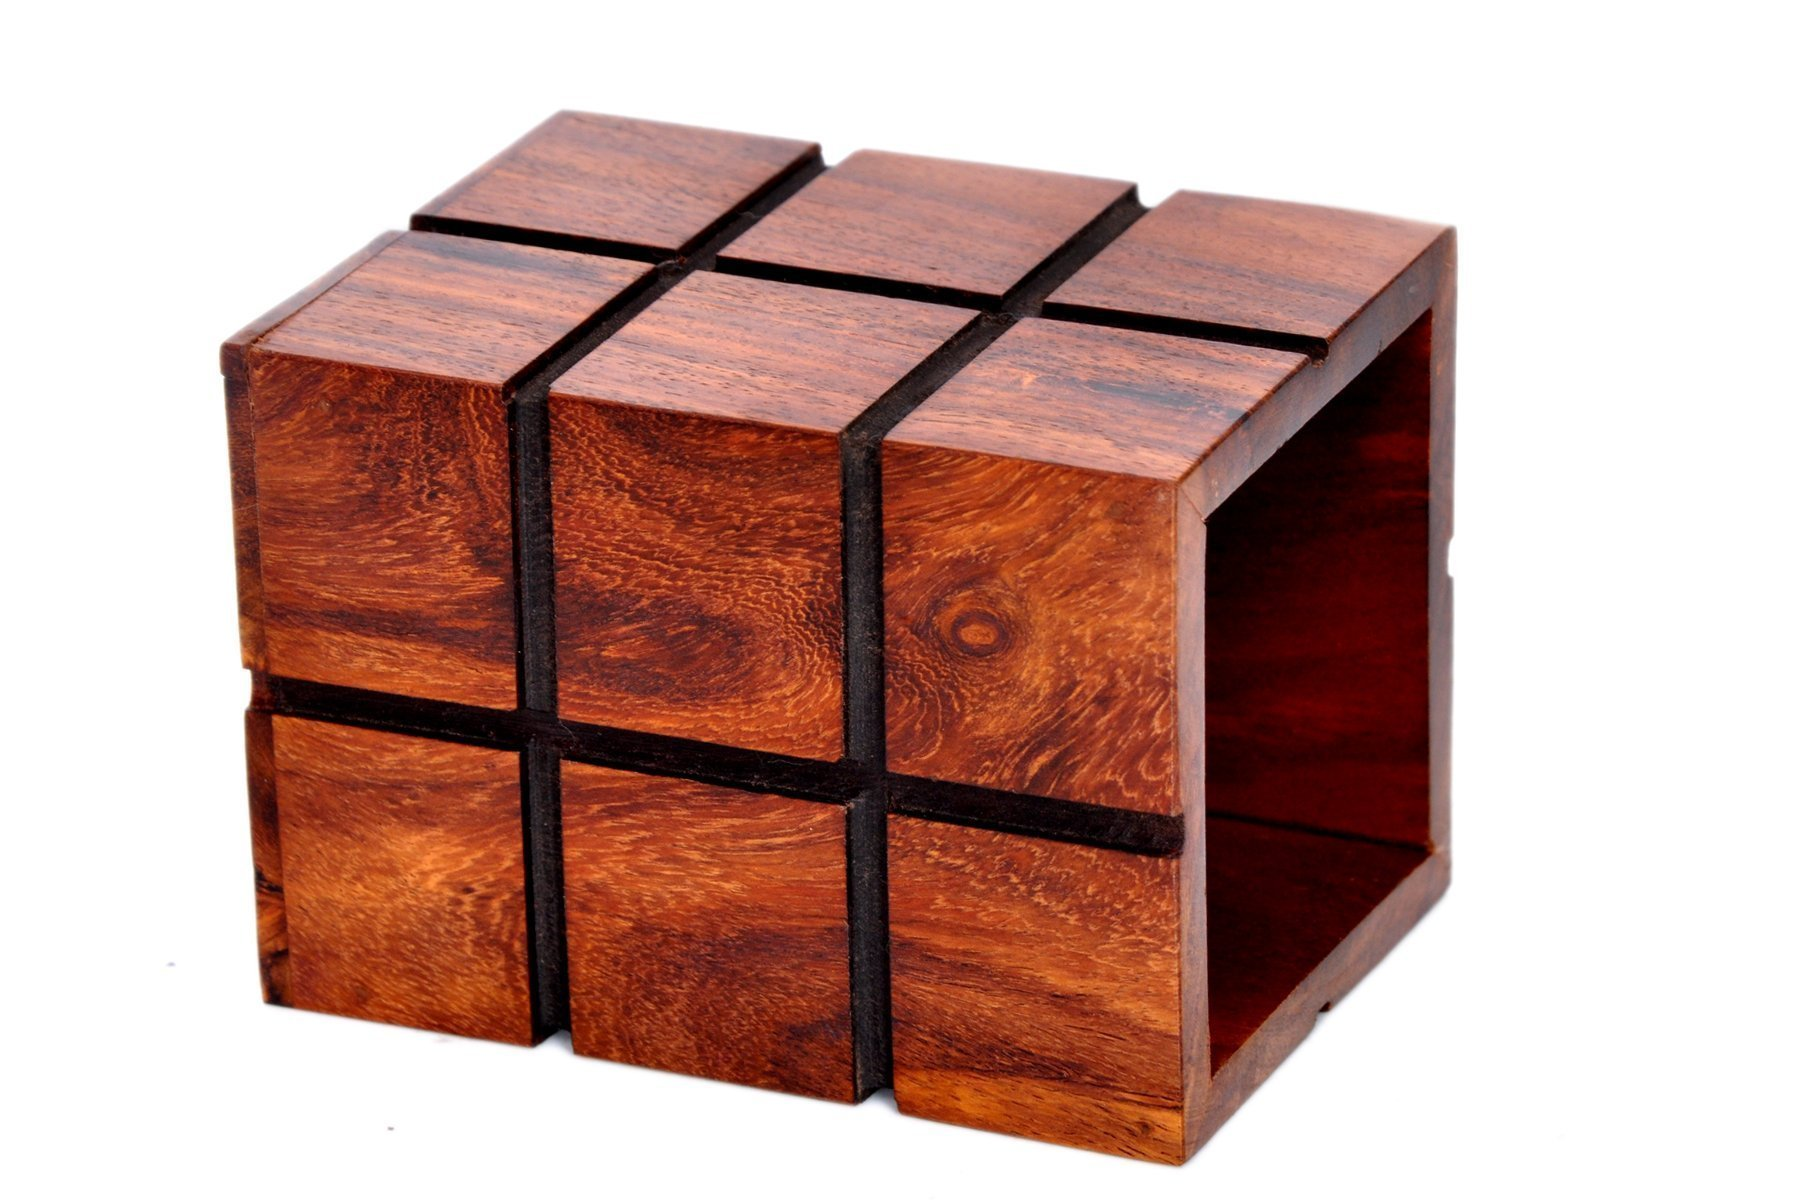 Hashcart Indian Rosewood Decorative Design Wooden Pen, Pencil Holder Handmade Traditional Storage Organiser for Desk, Office, Home Gift for Birthday by Hashcart (Image #2)